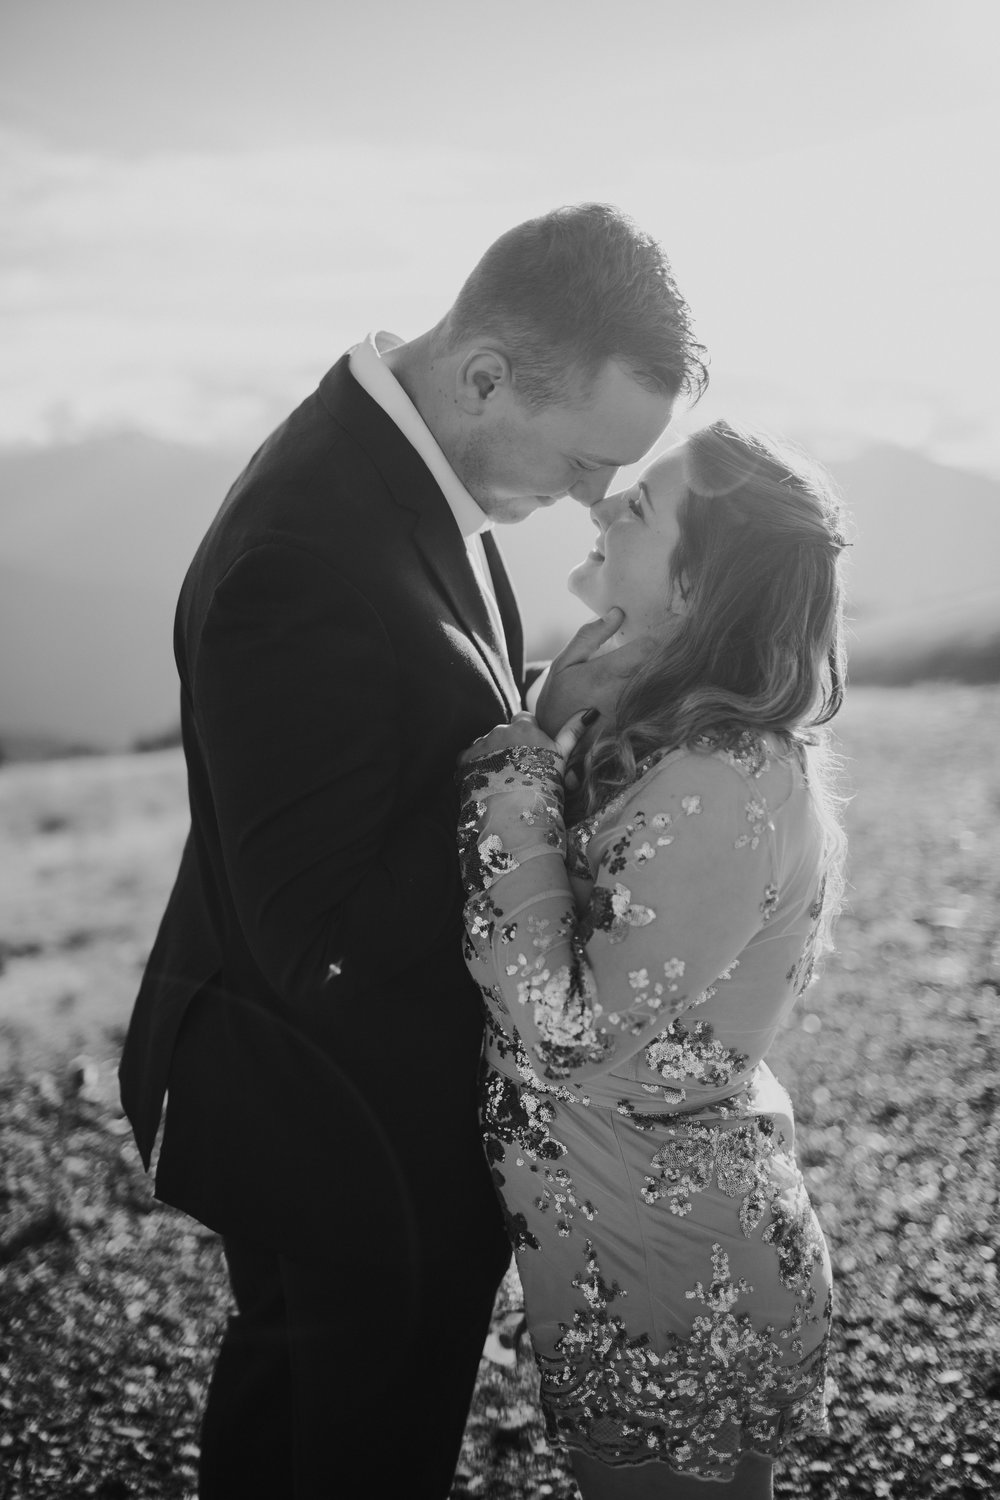 PNW-Hurricane-Ridge-Port-Angeles-Washington-elopement-photographer-kayla-dawn-photography-kayladawnphoto-wedding-anniversary-photoshoot-olympic-peninsula-114.jpg